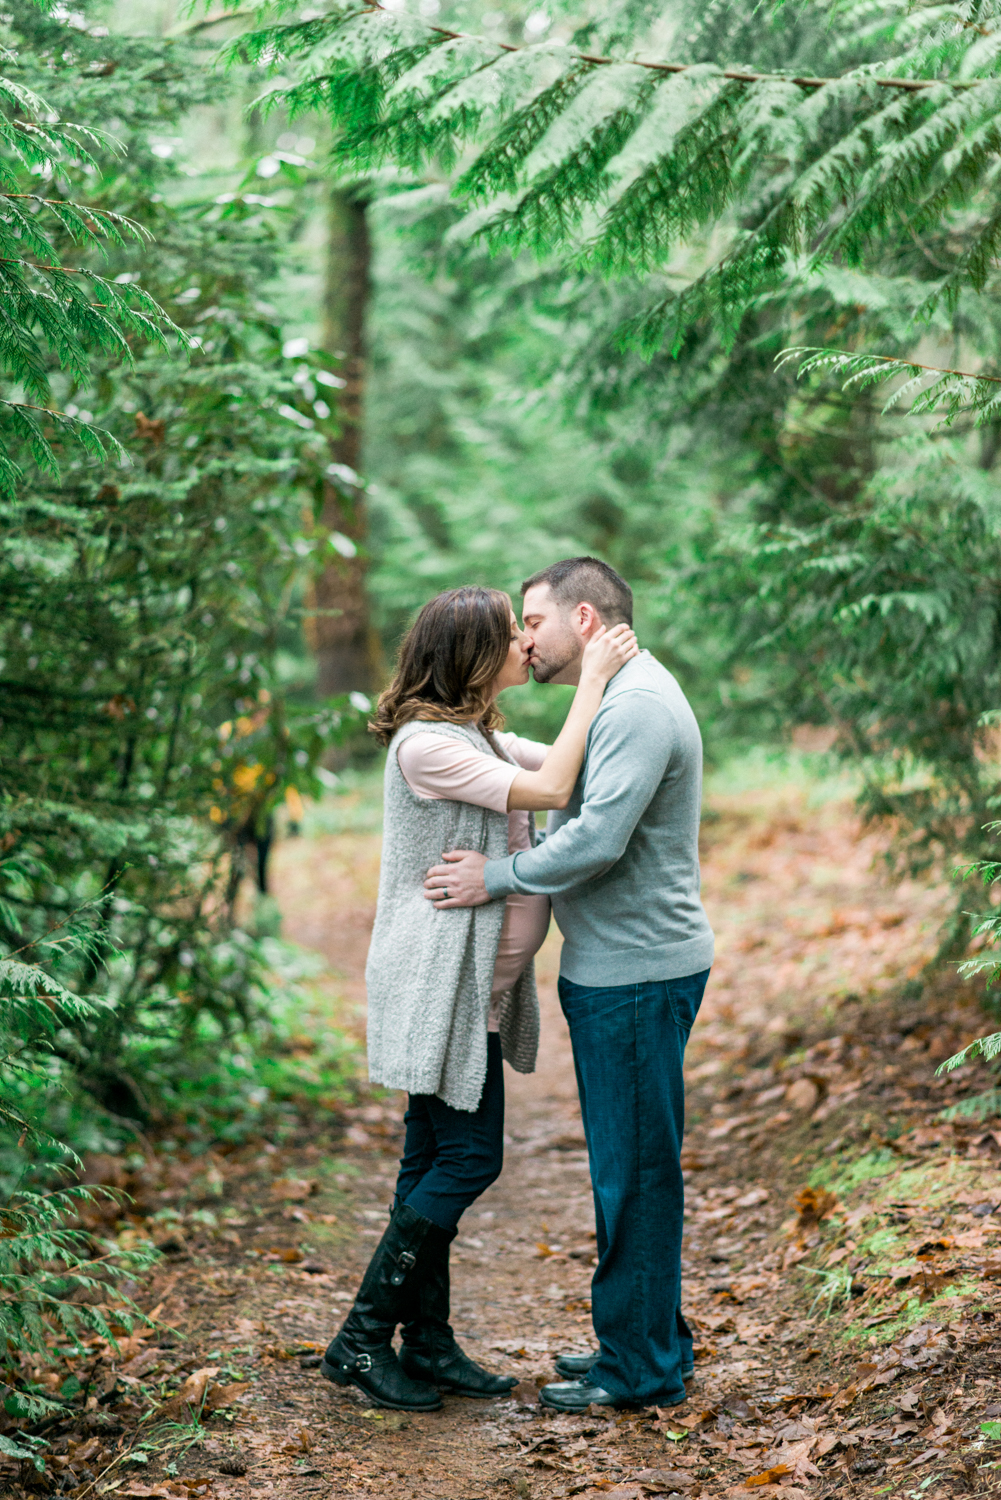 portland-maternity-photographer-washington-park-forest-woodland-shelley-marie-photo-4